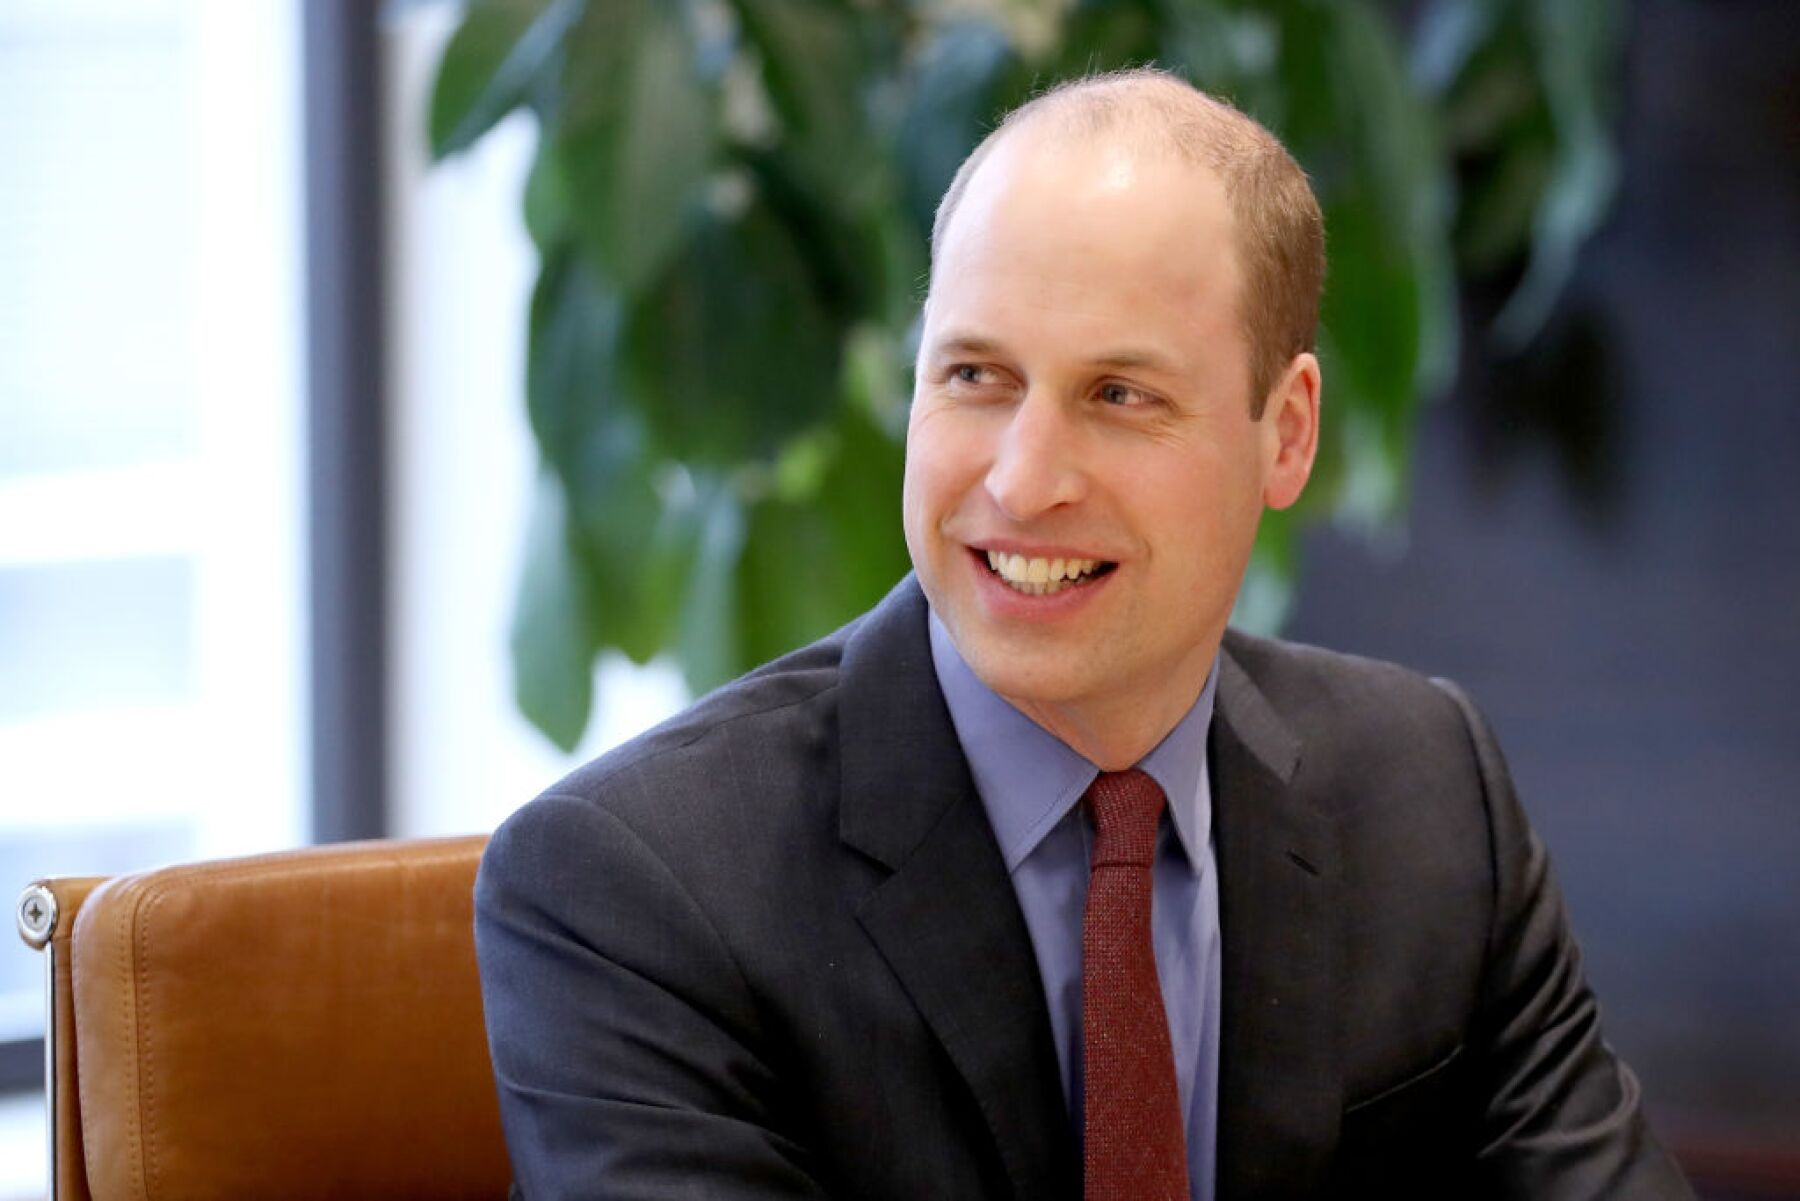 The Duke Of Cambridge Introduces New Workplace Mental Health Initiatives